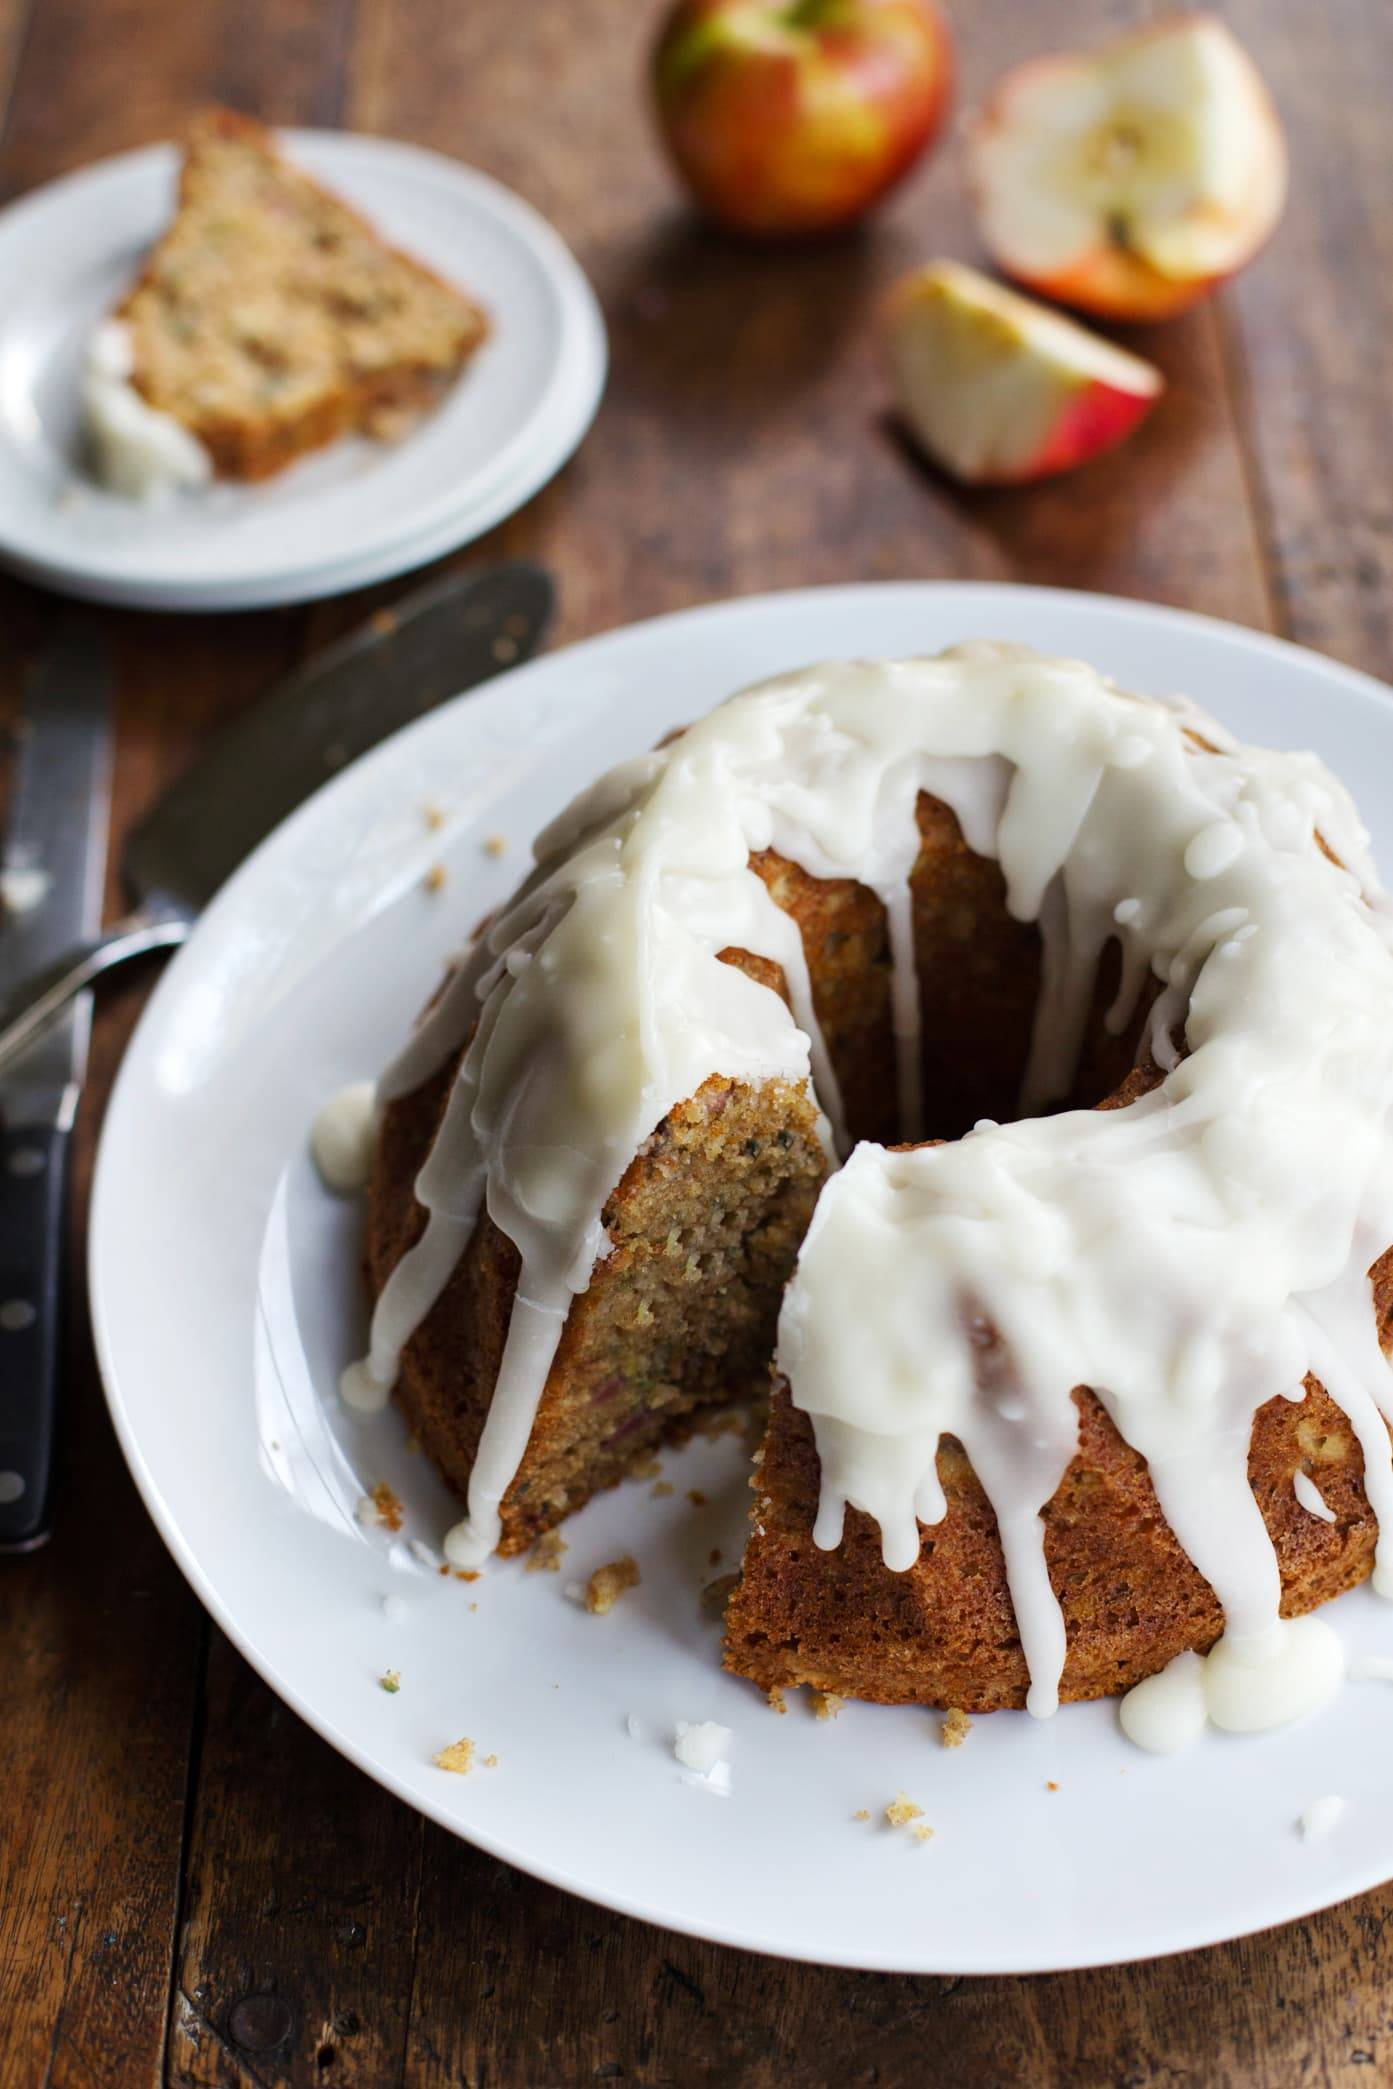 Honey apple bundt cake with glaze on a plate.